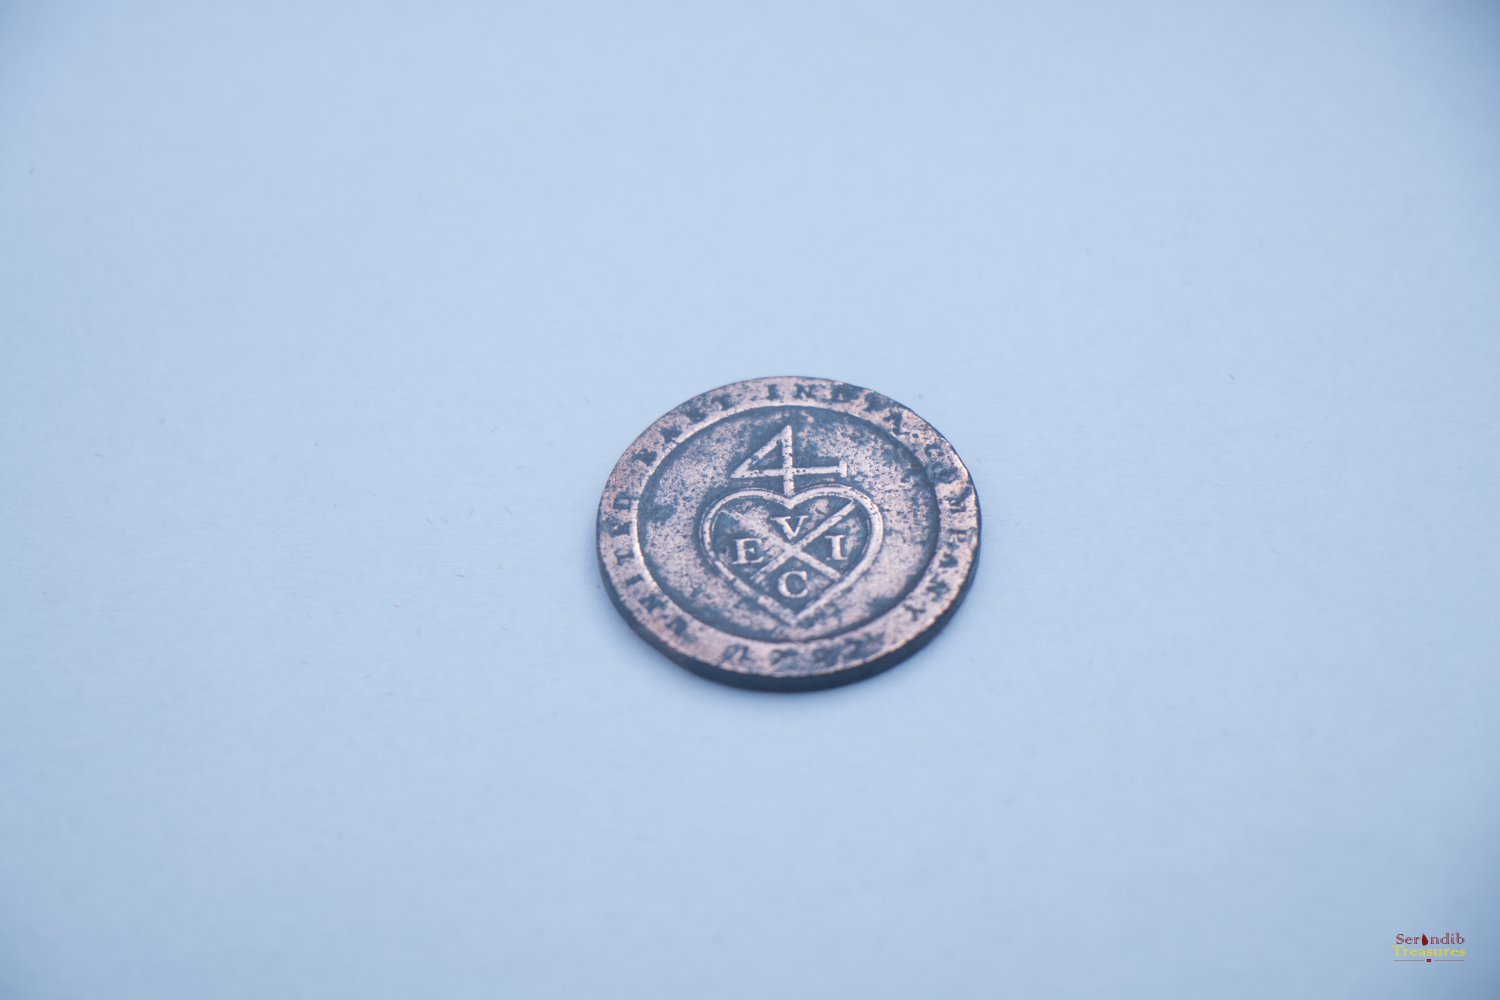 1797 Madras Presidency �Half Dub� coin. Dutch East India Company. 224 years old. Extremely rare.